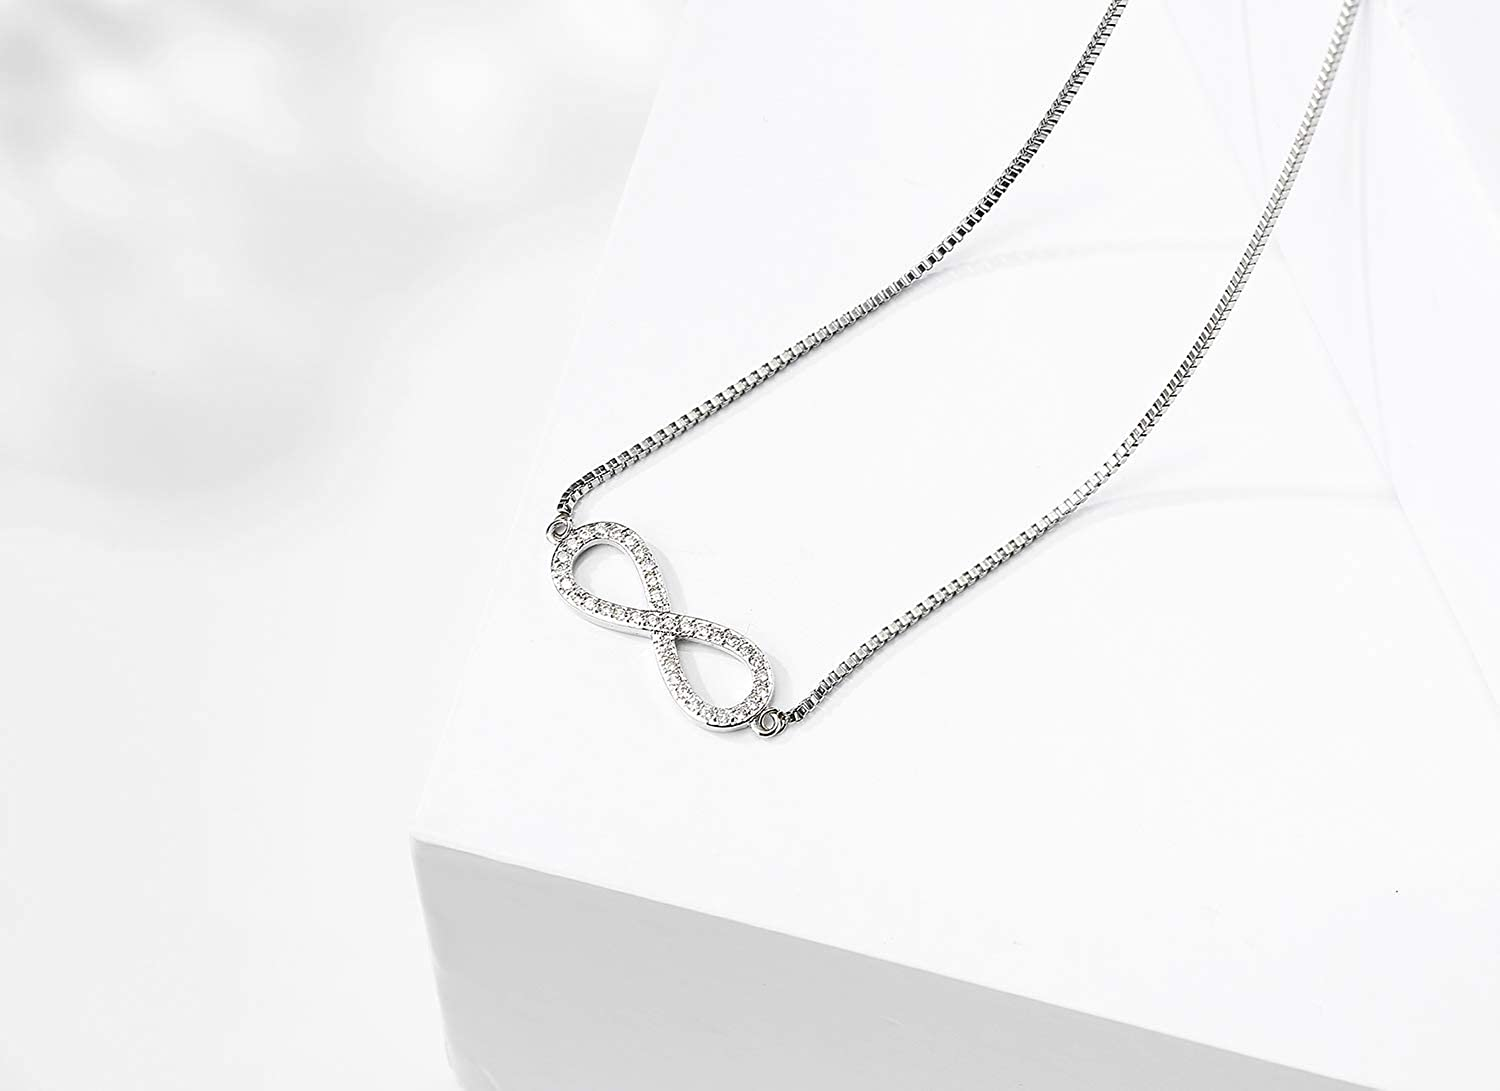 SWEETRAINBOWN Women Infinity Charm Necklace,Gold Plated Pendant Choker Necklace,CZ Pave Setting Jewelry 16 Love Forever